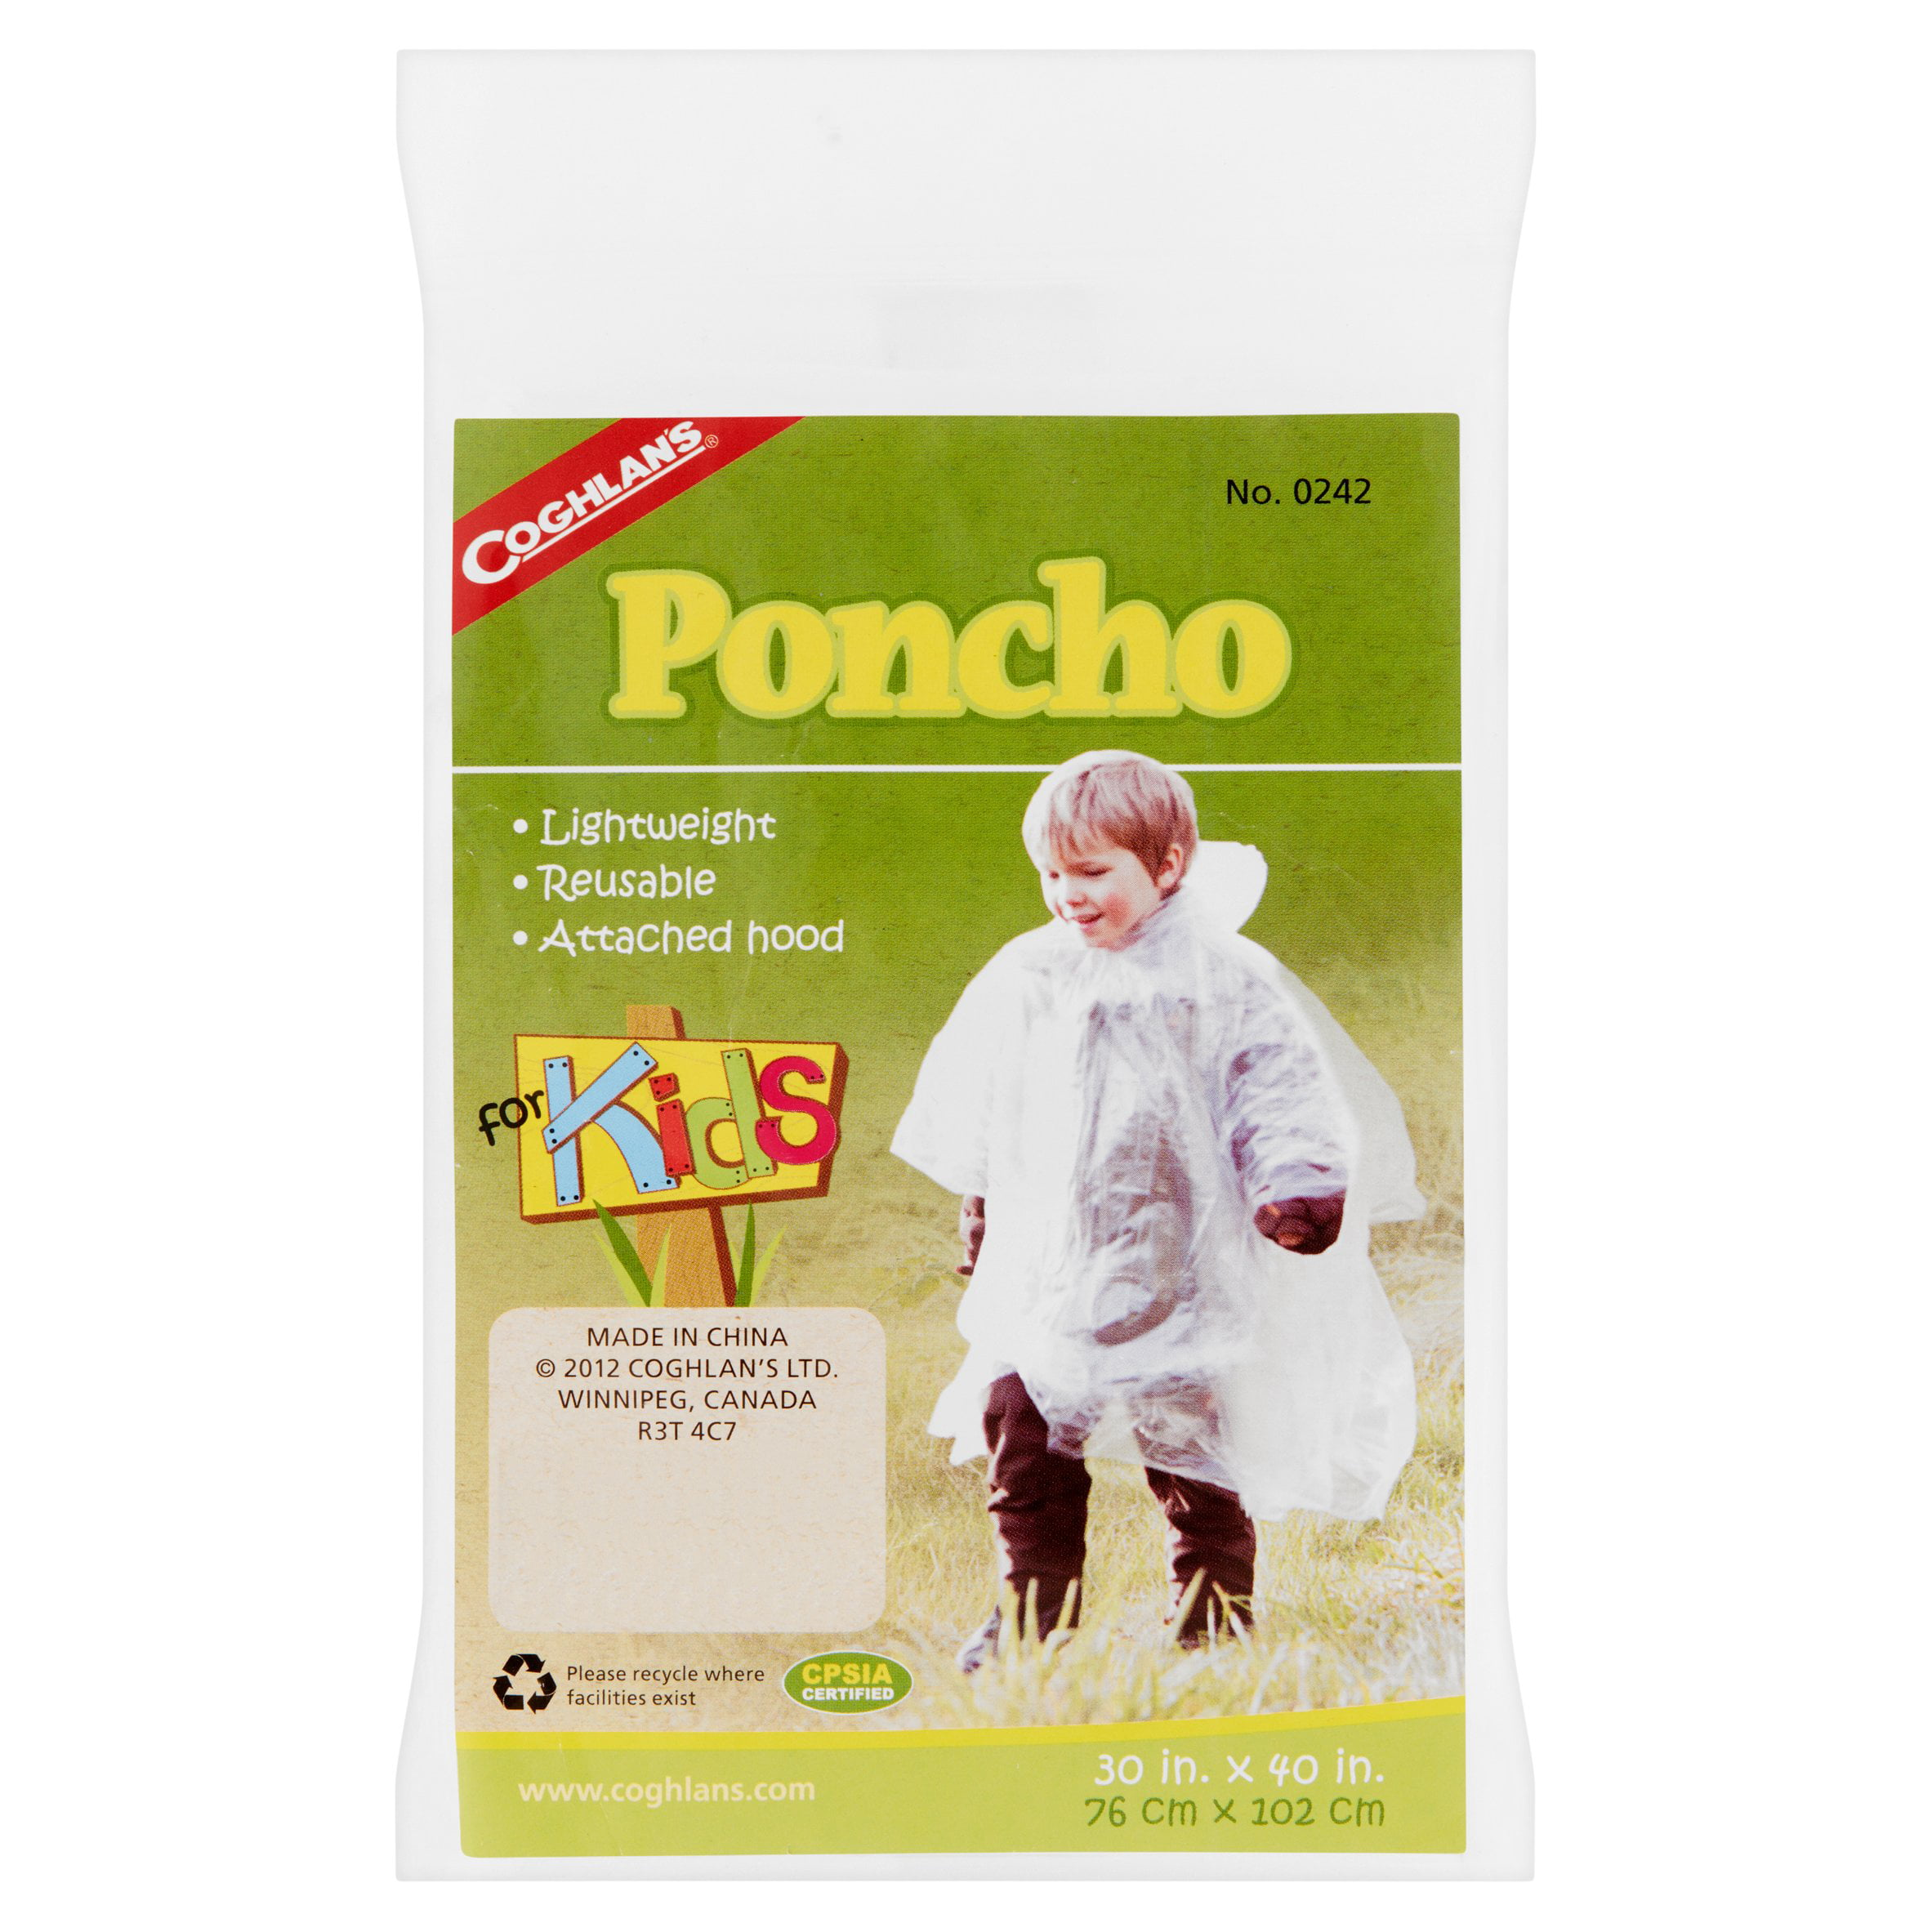 Coghlan's Poncho for Kids by Coghlan'S Ltd.